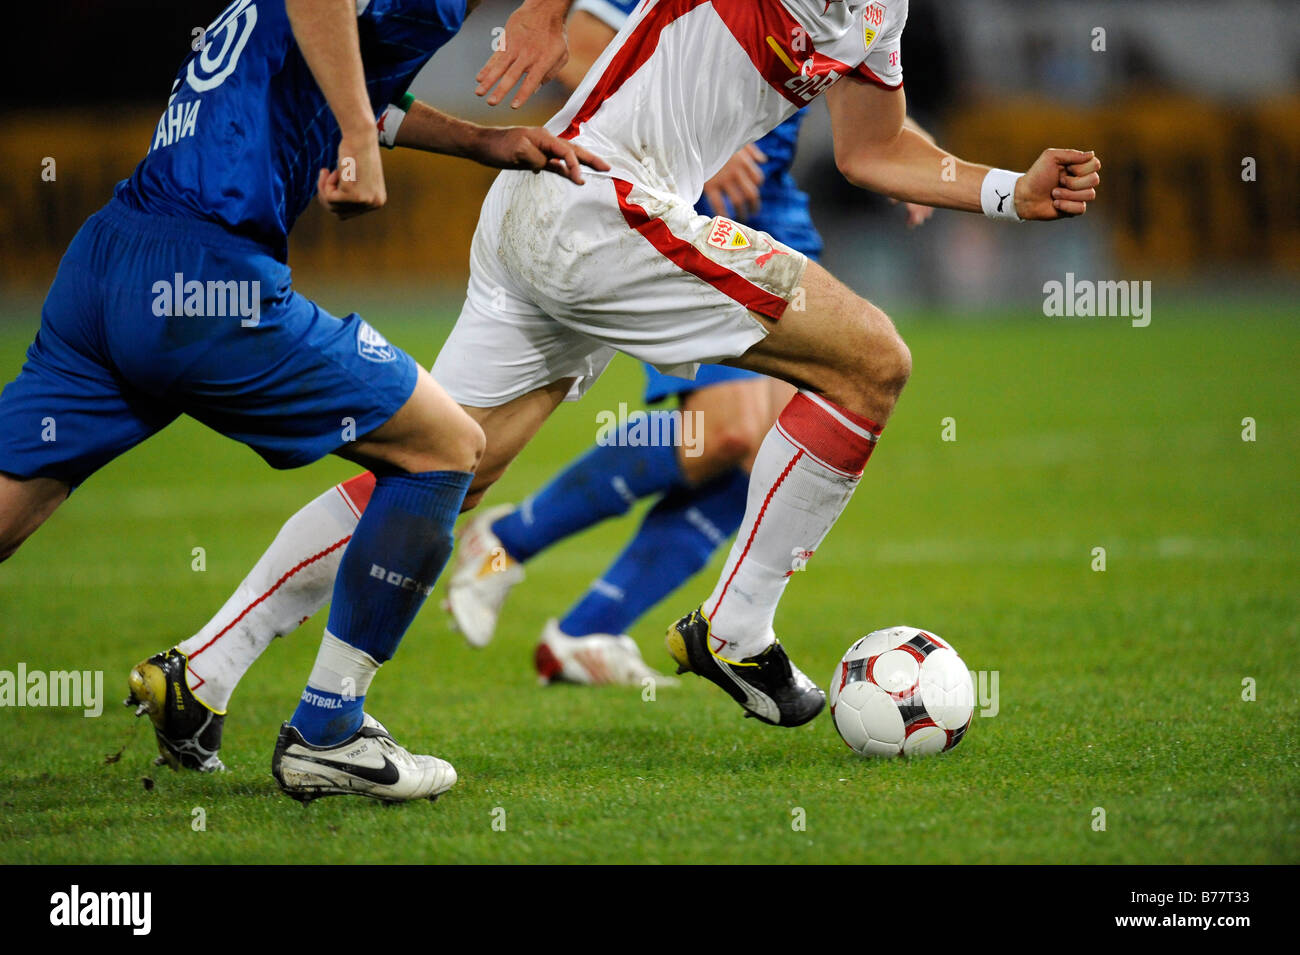 Football players battle for the ball, partial view - Stock Image